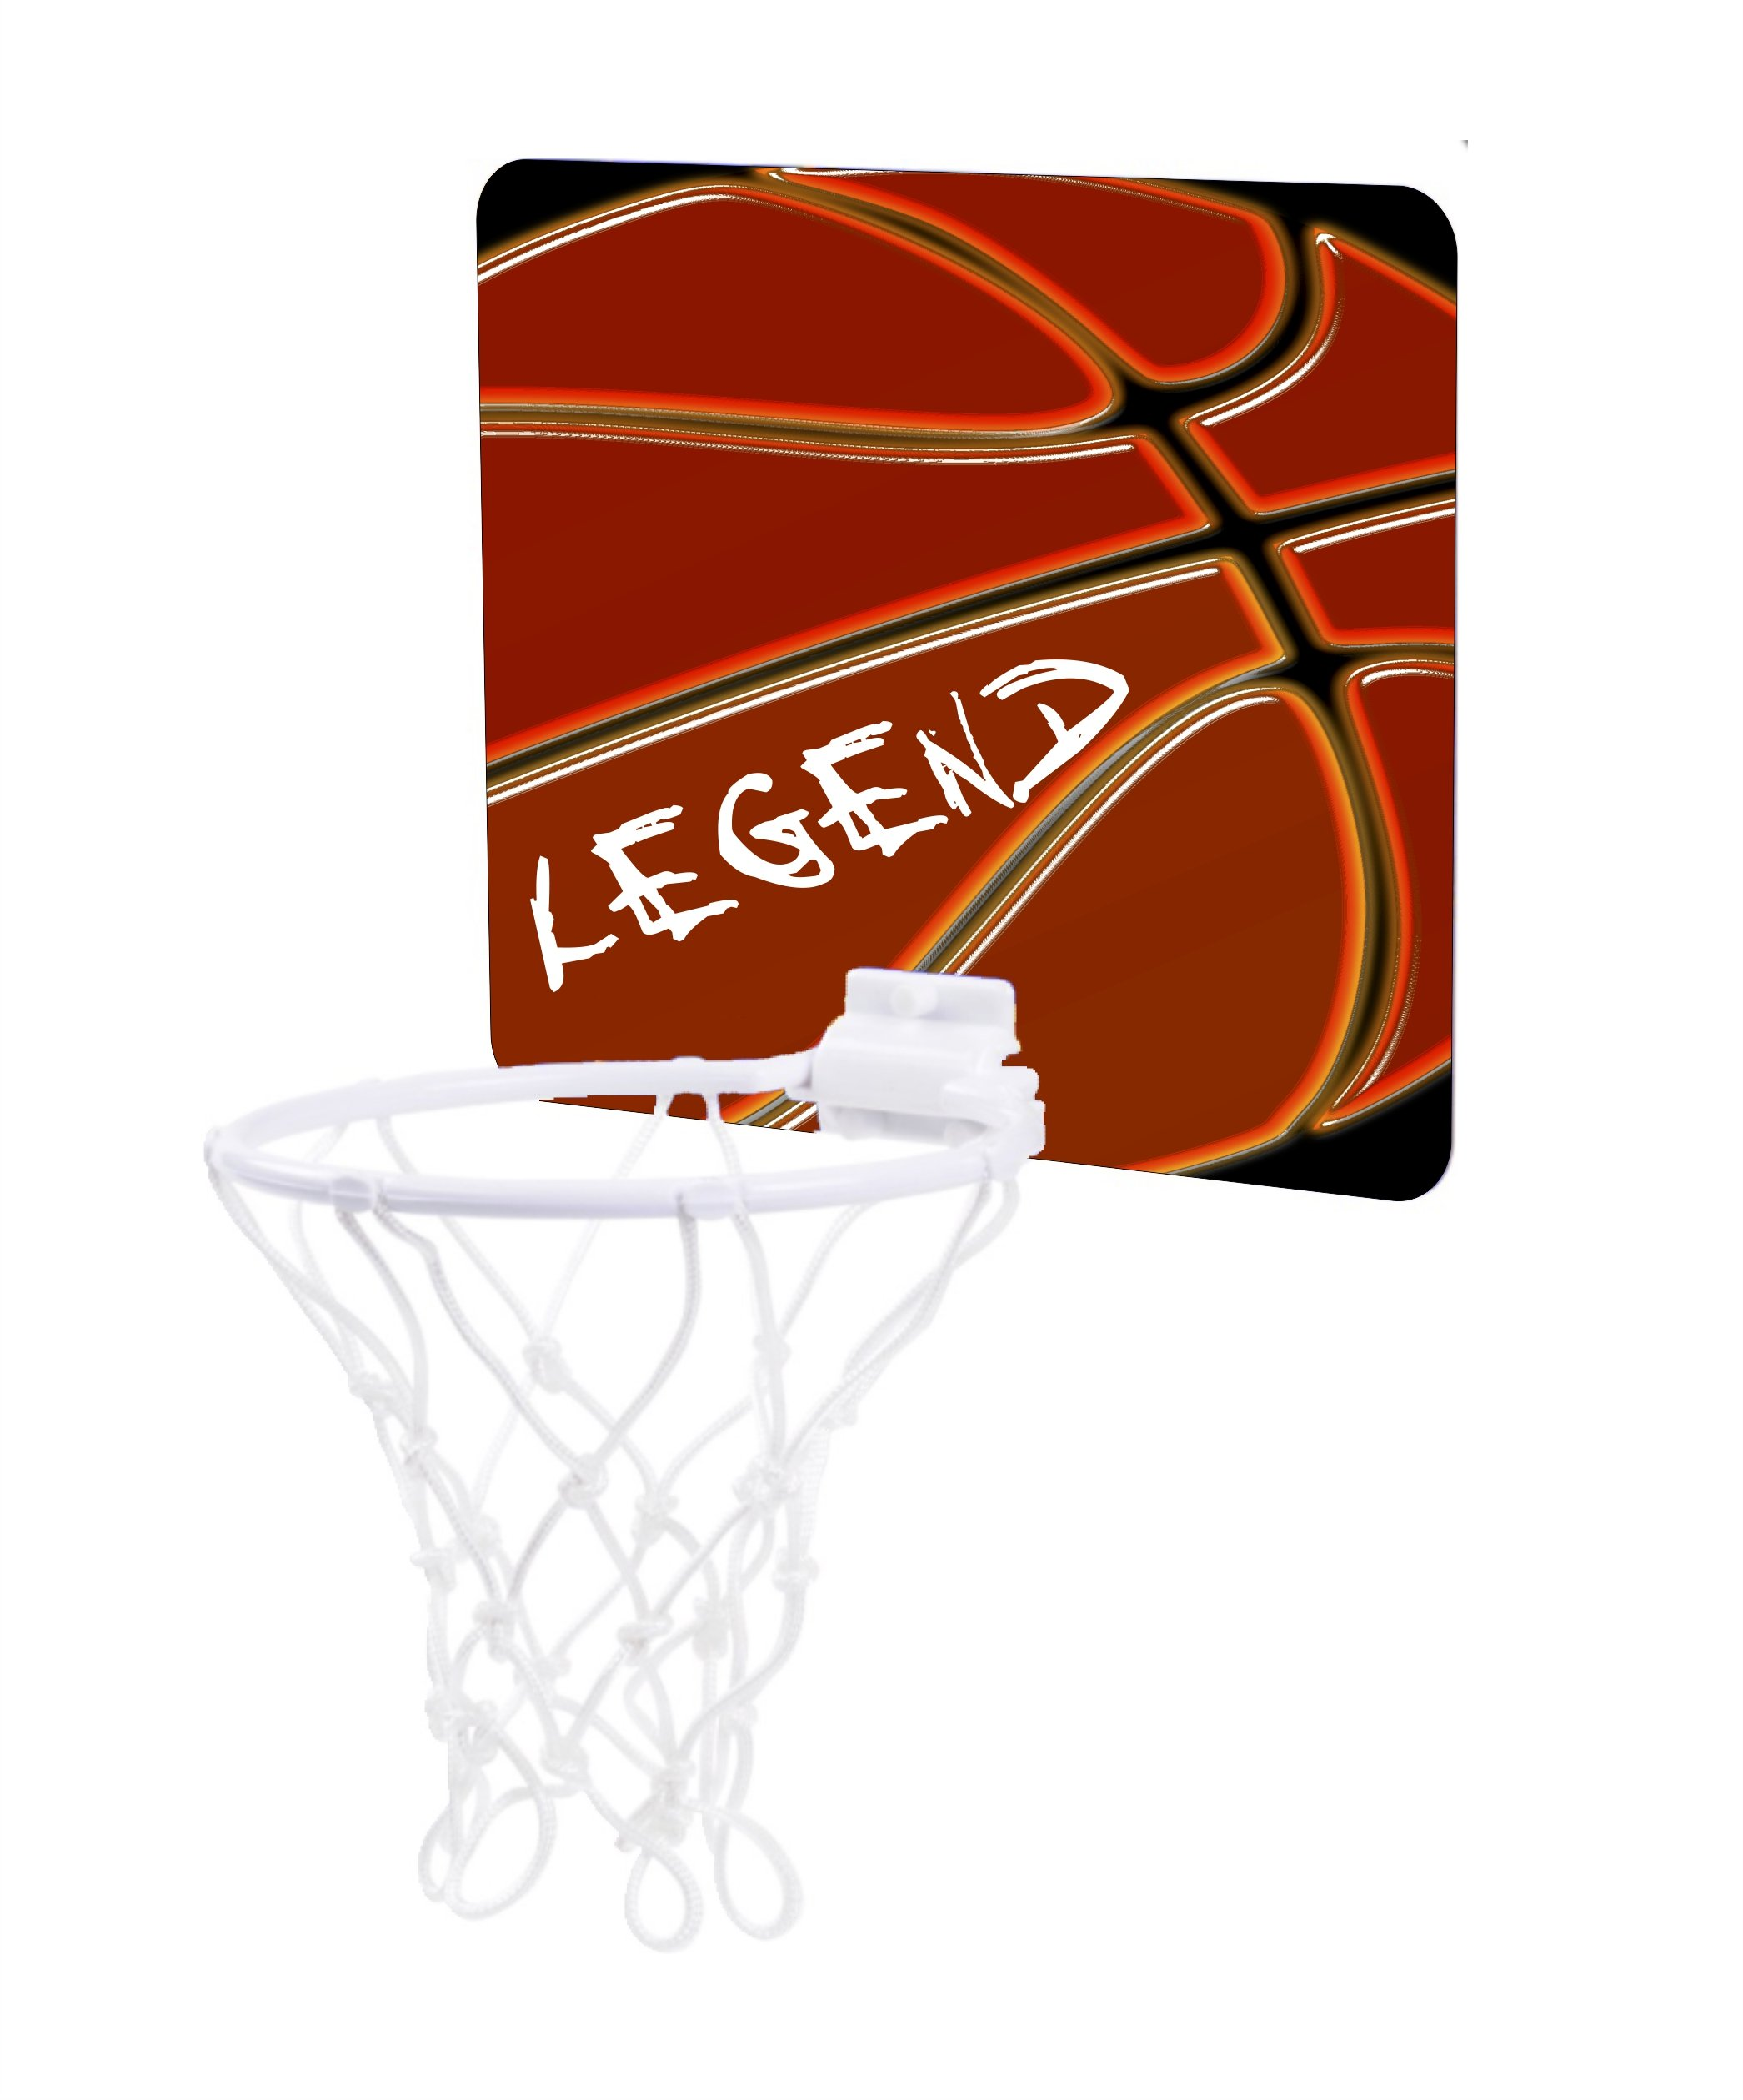 Jacks Outlet The Word Legend on Up-Close Basketball - Childrens 7.5'' x 9'' Mini Basketball Backboard - Goal with 6'' Hoop by Jacks Outlet (Image #1)